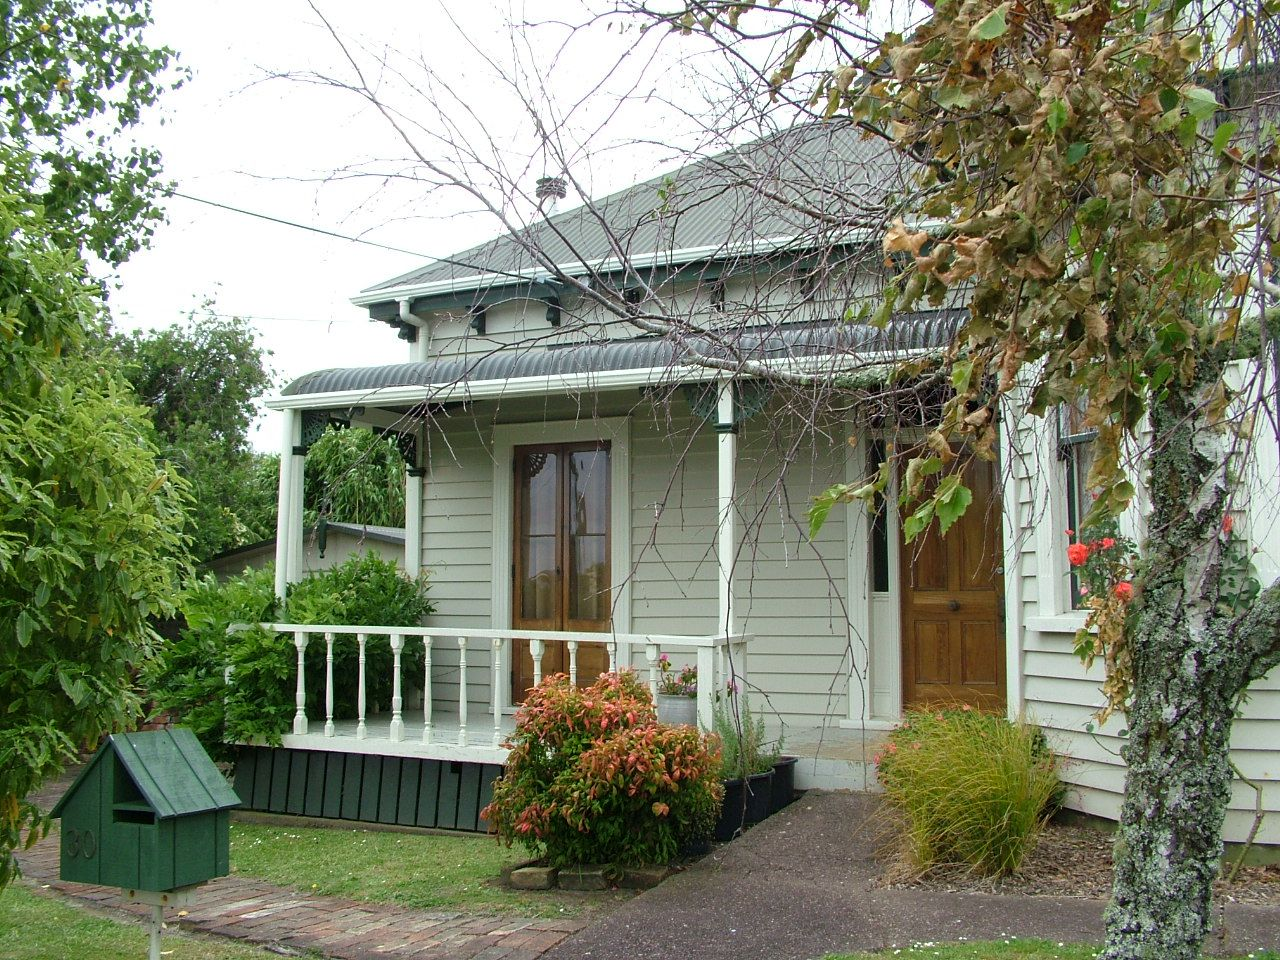 Traditional australia federation exterior inspirations paint - Exterior Paint Colors